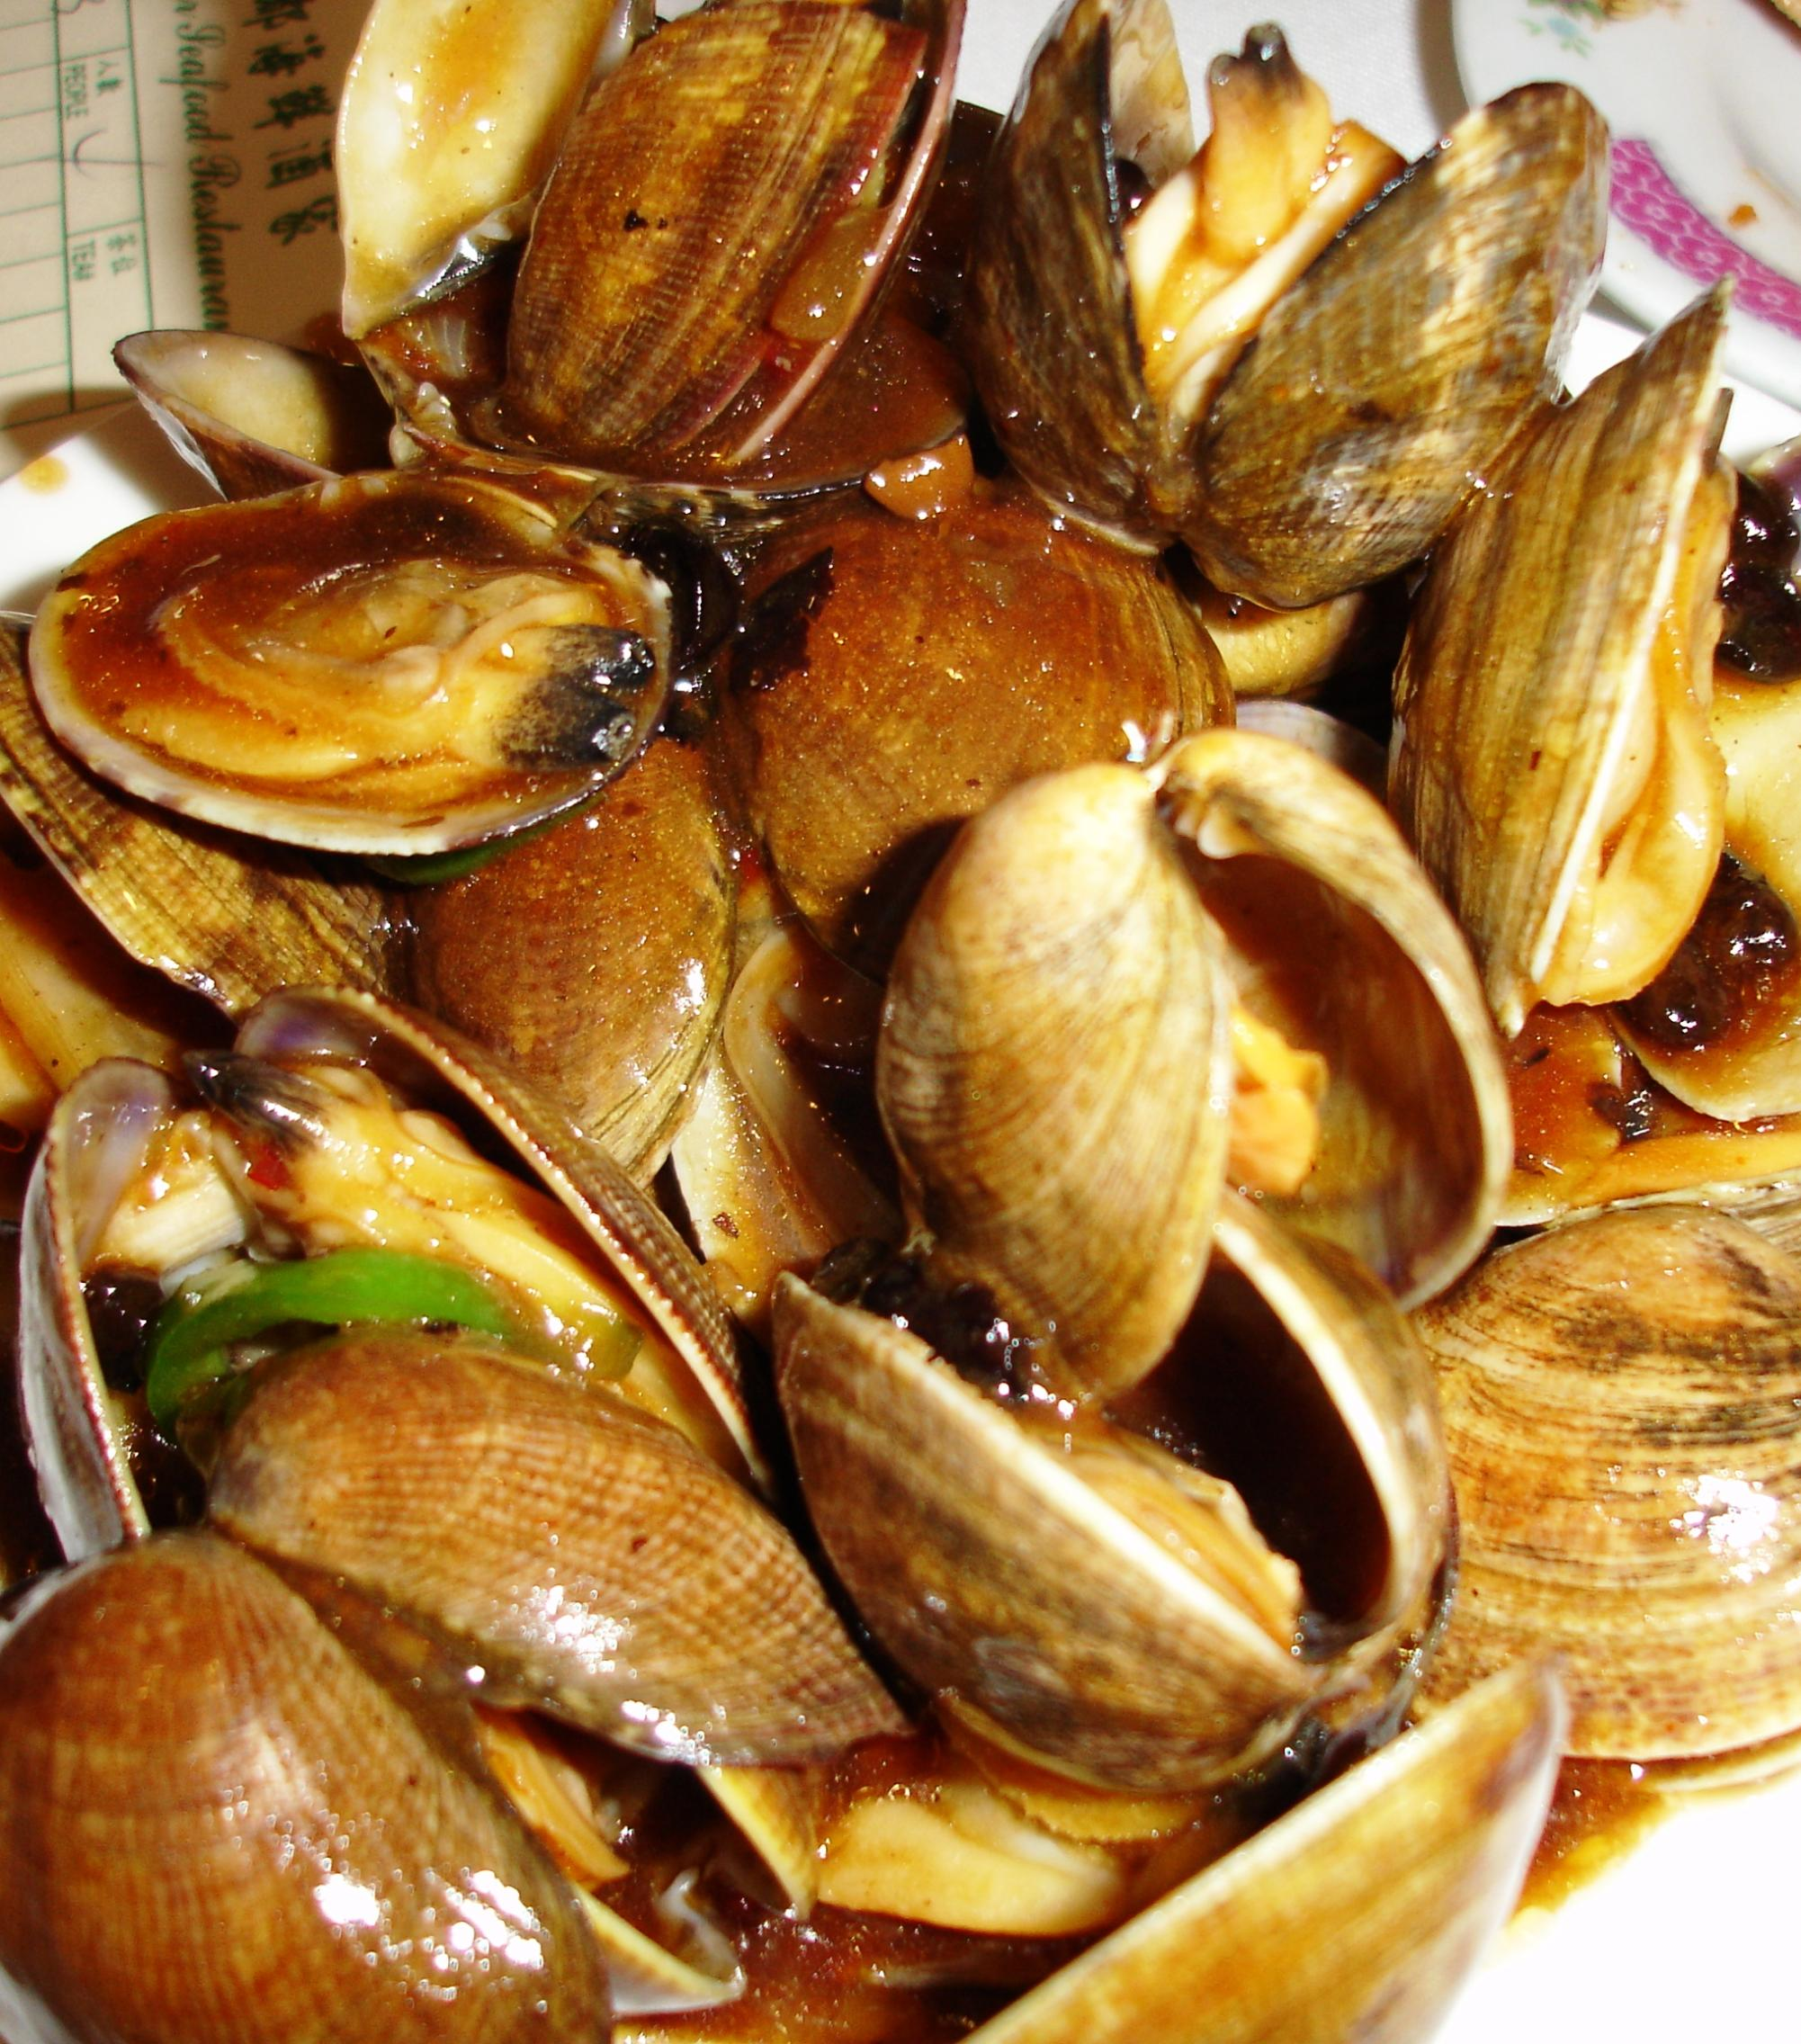 The clams with black bean sauce are superb!